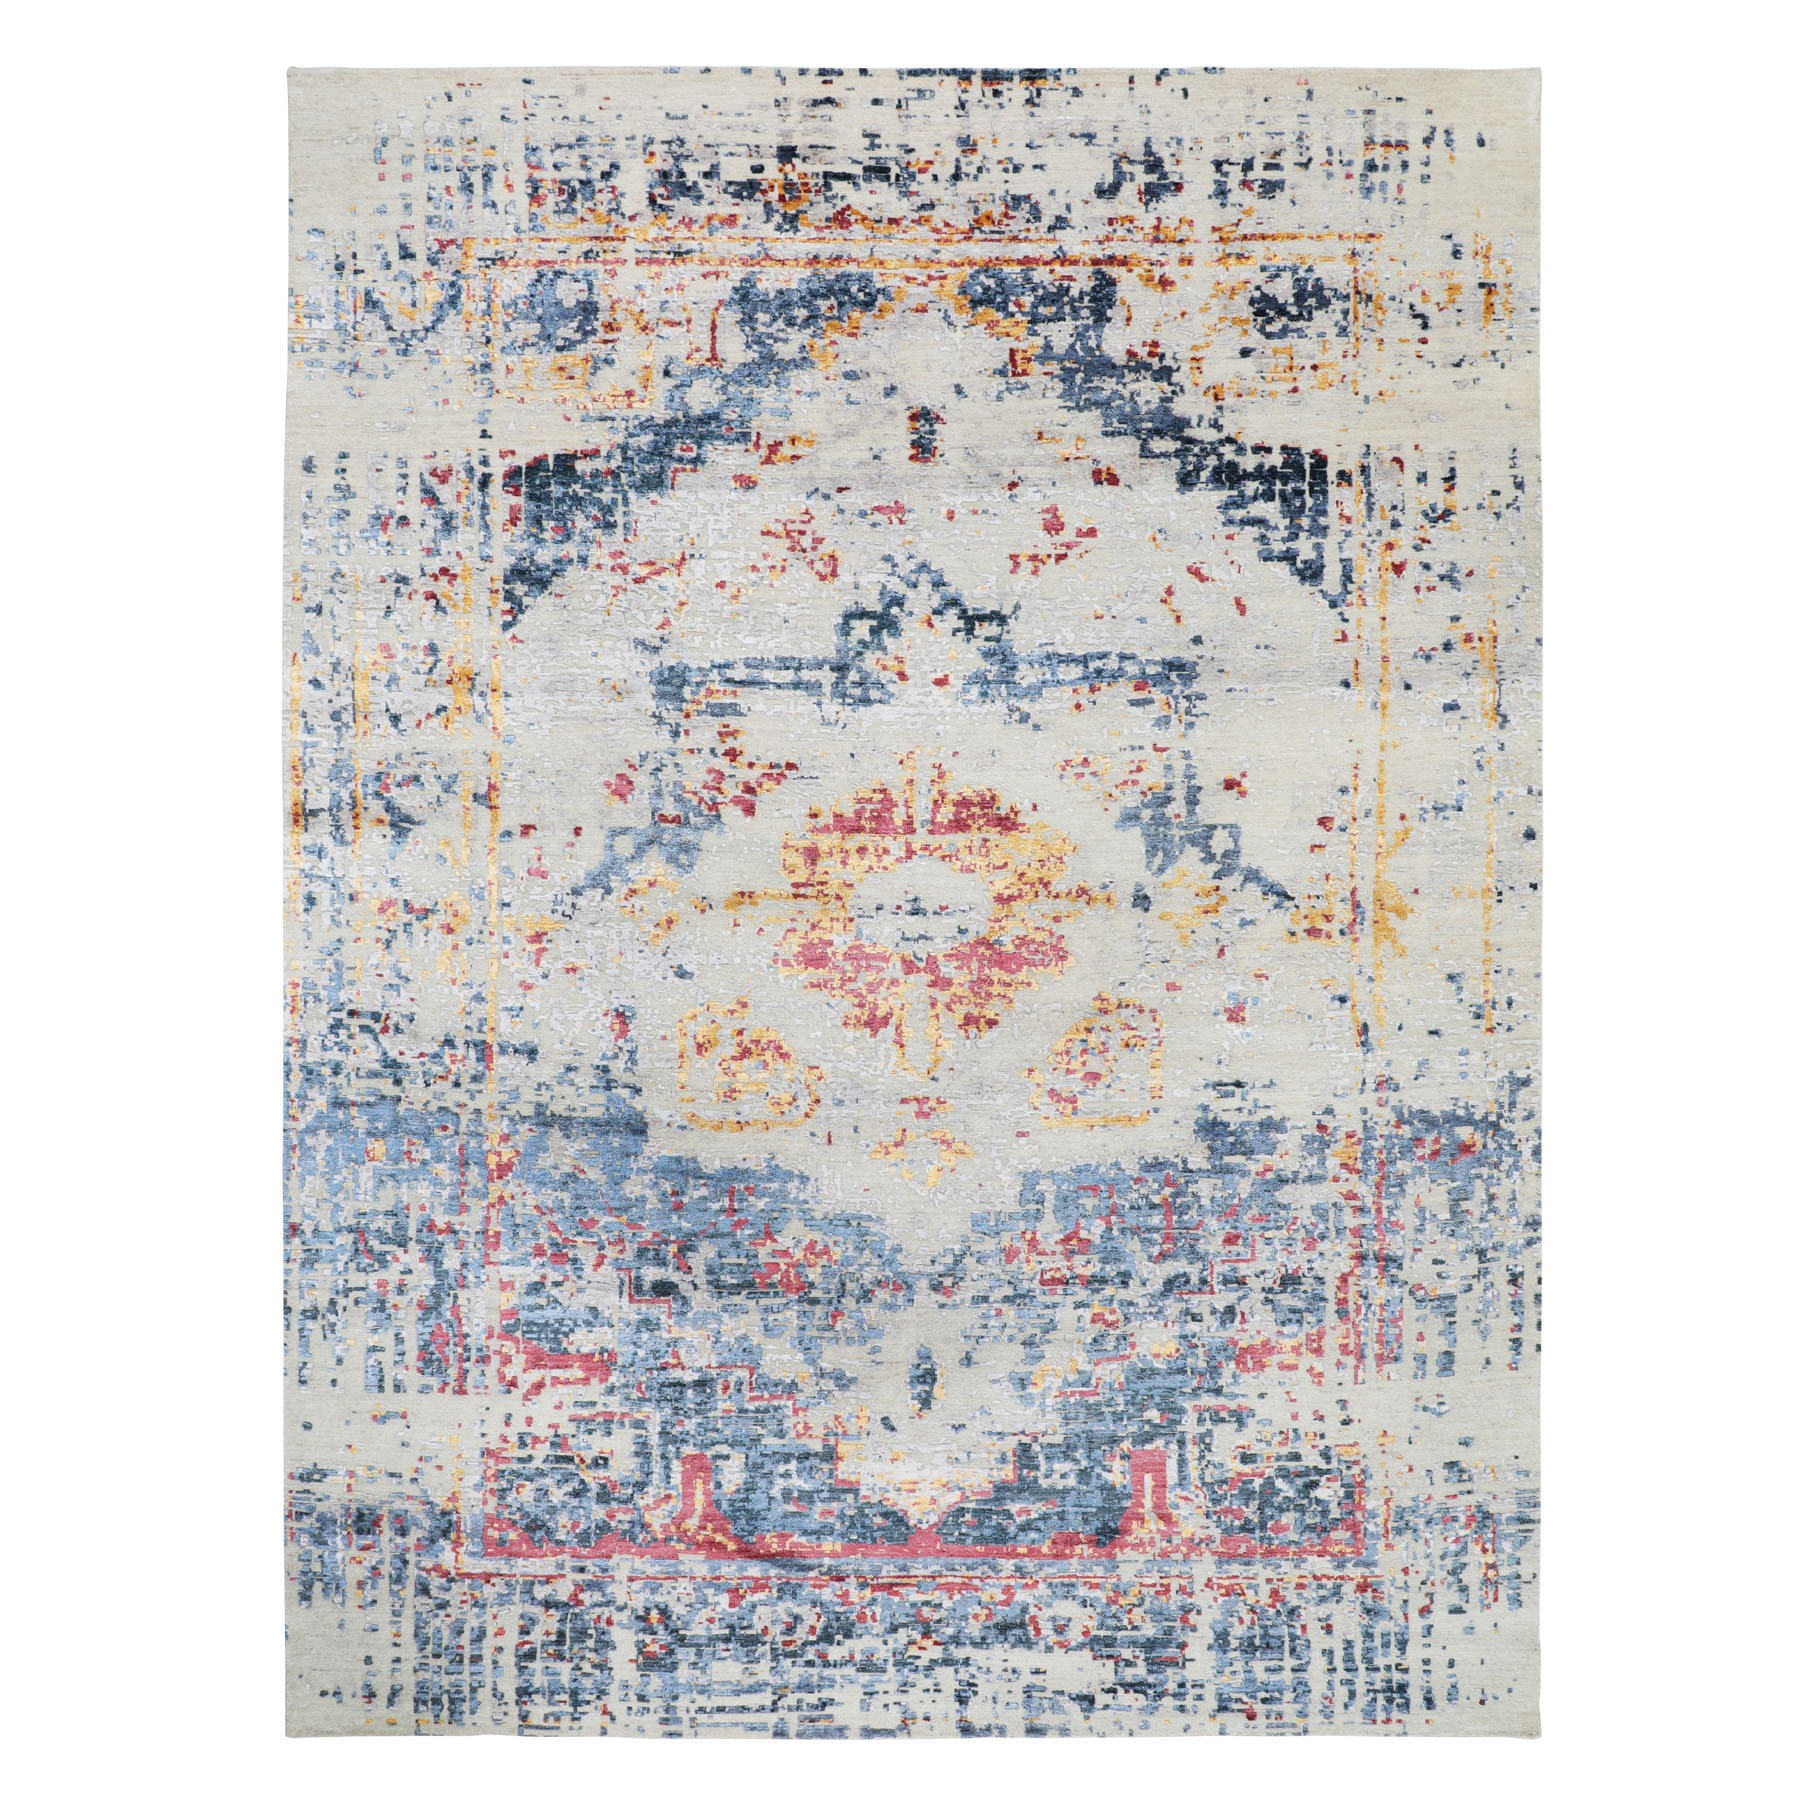 Modern & Contemporary Rugs LUV522333